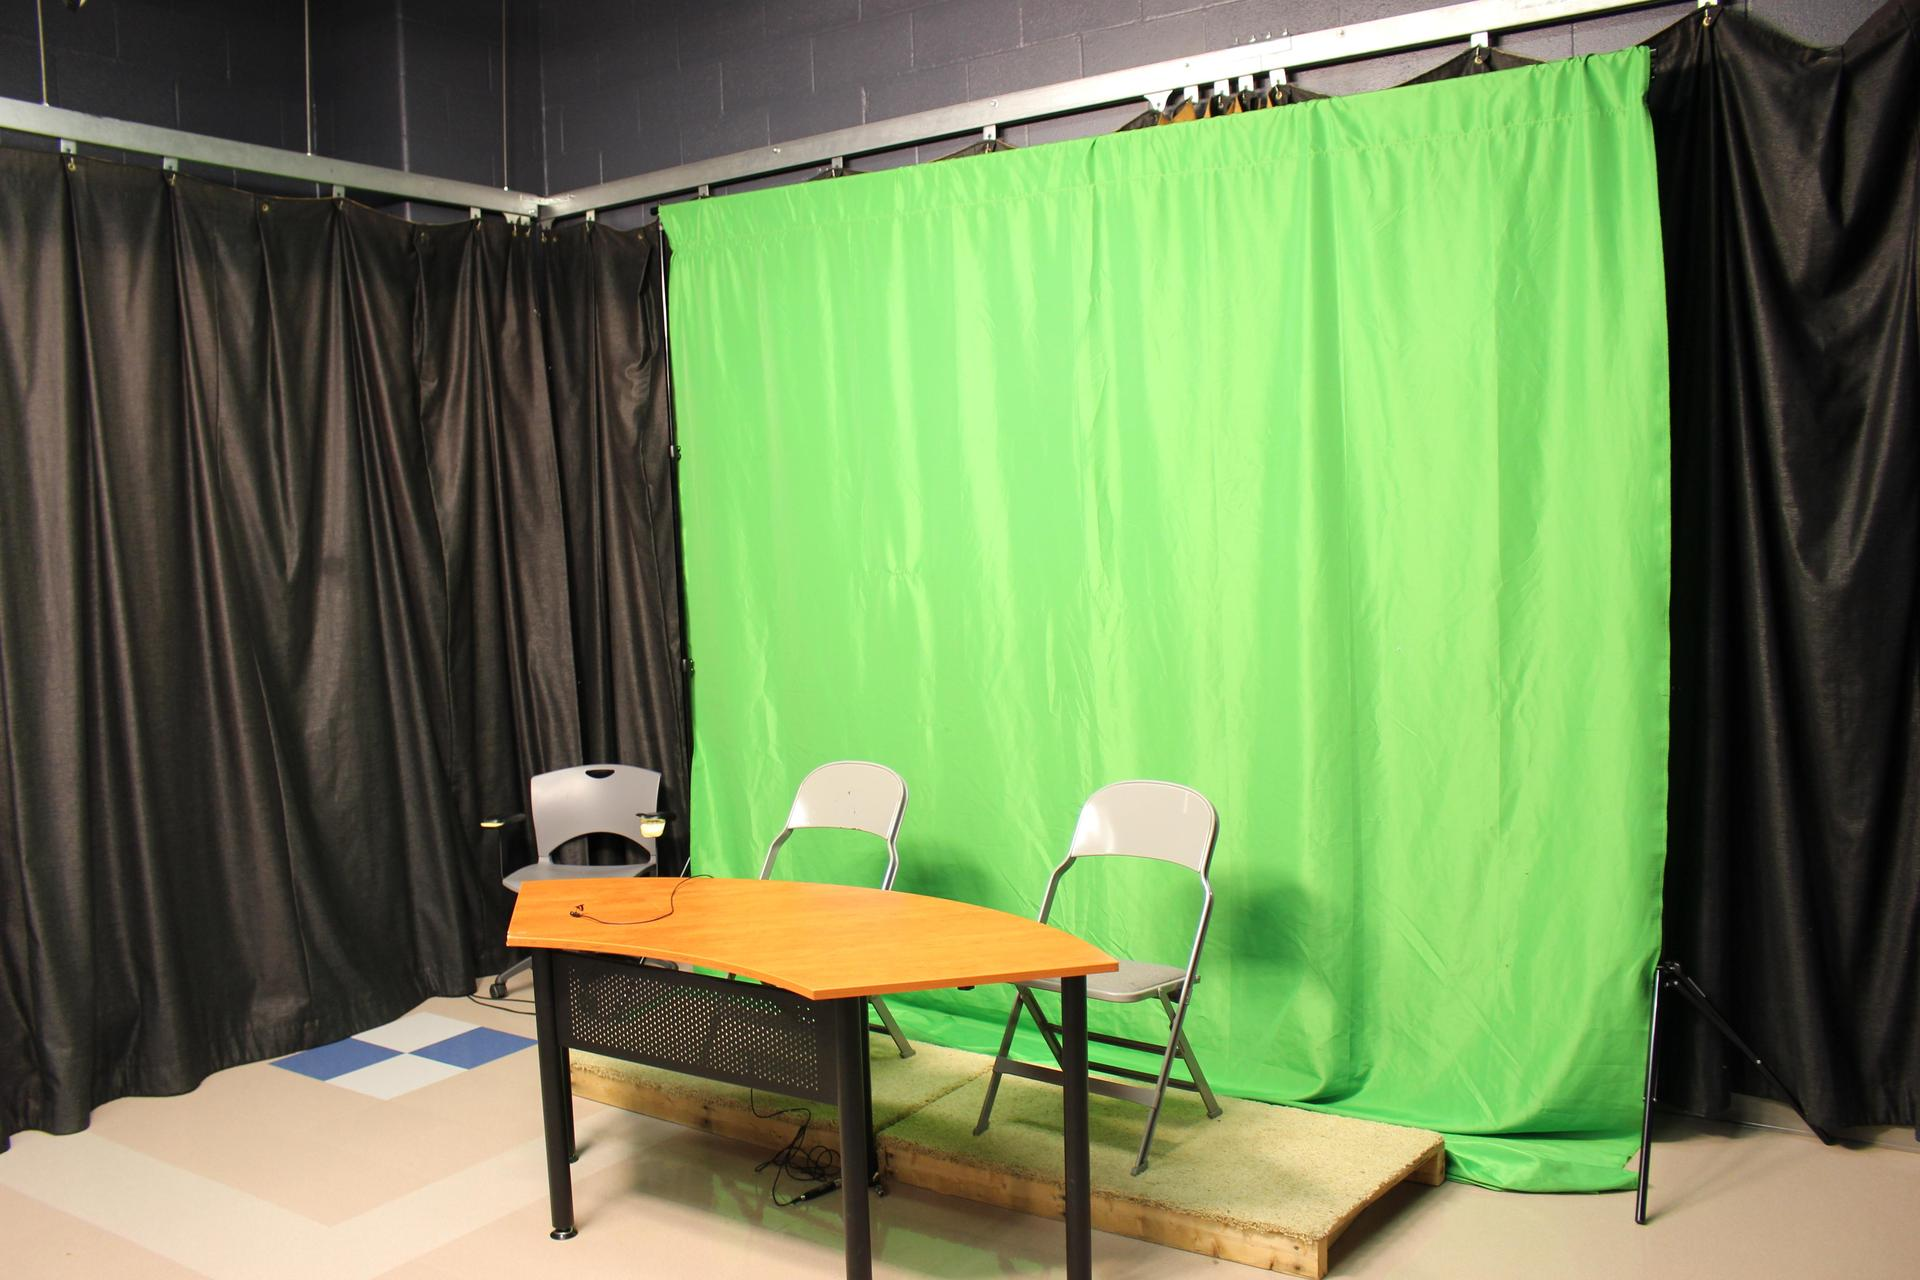 Other projects are filmed in front of our green screen so that digital effects can be used